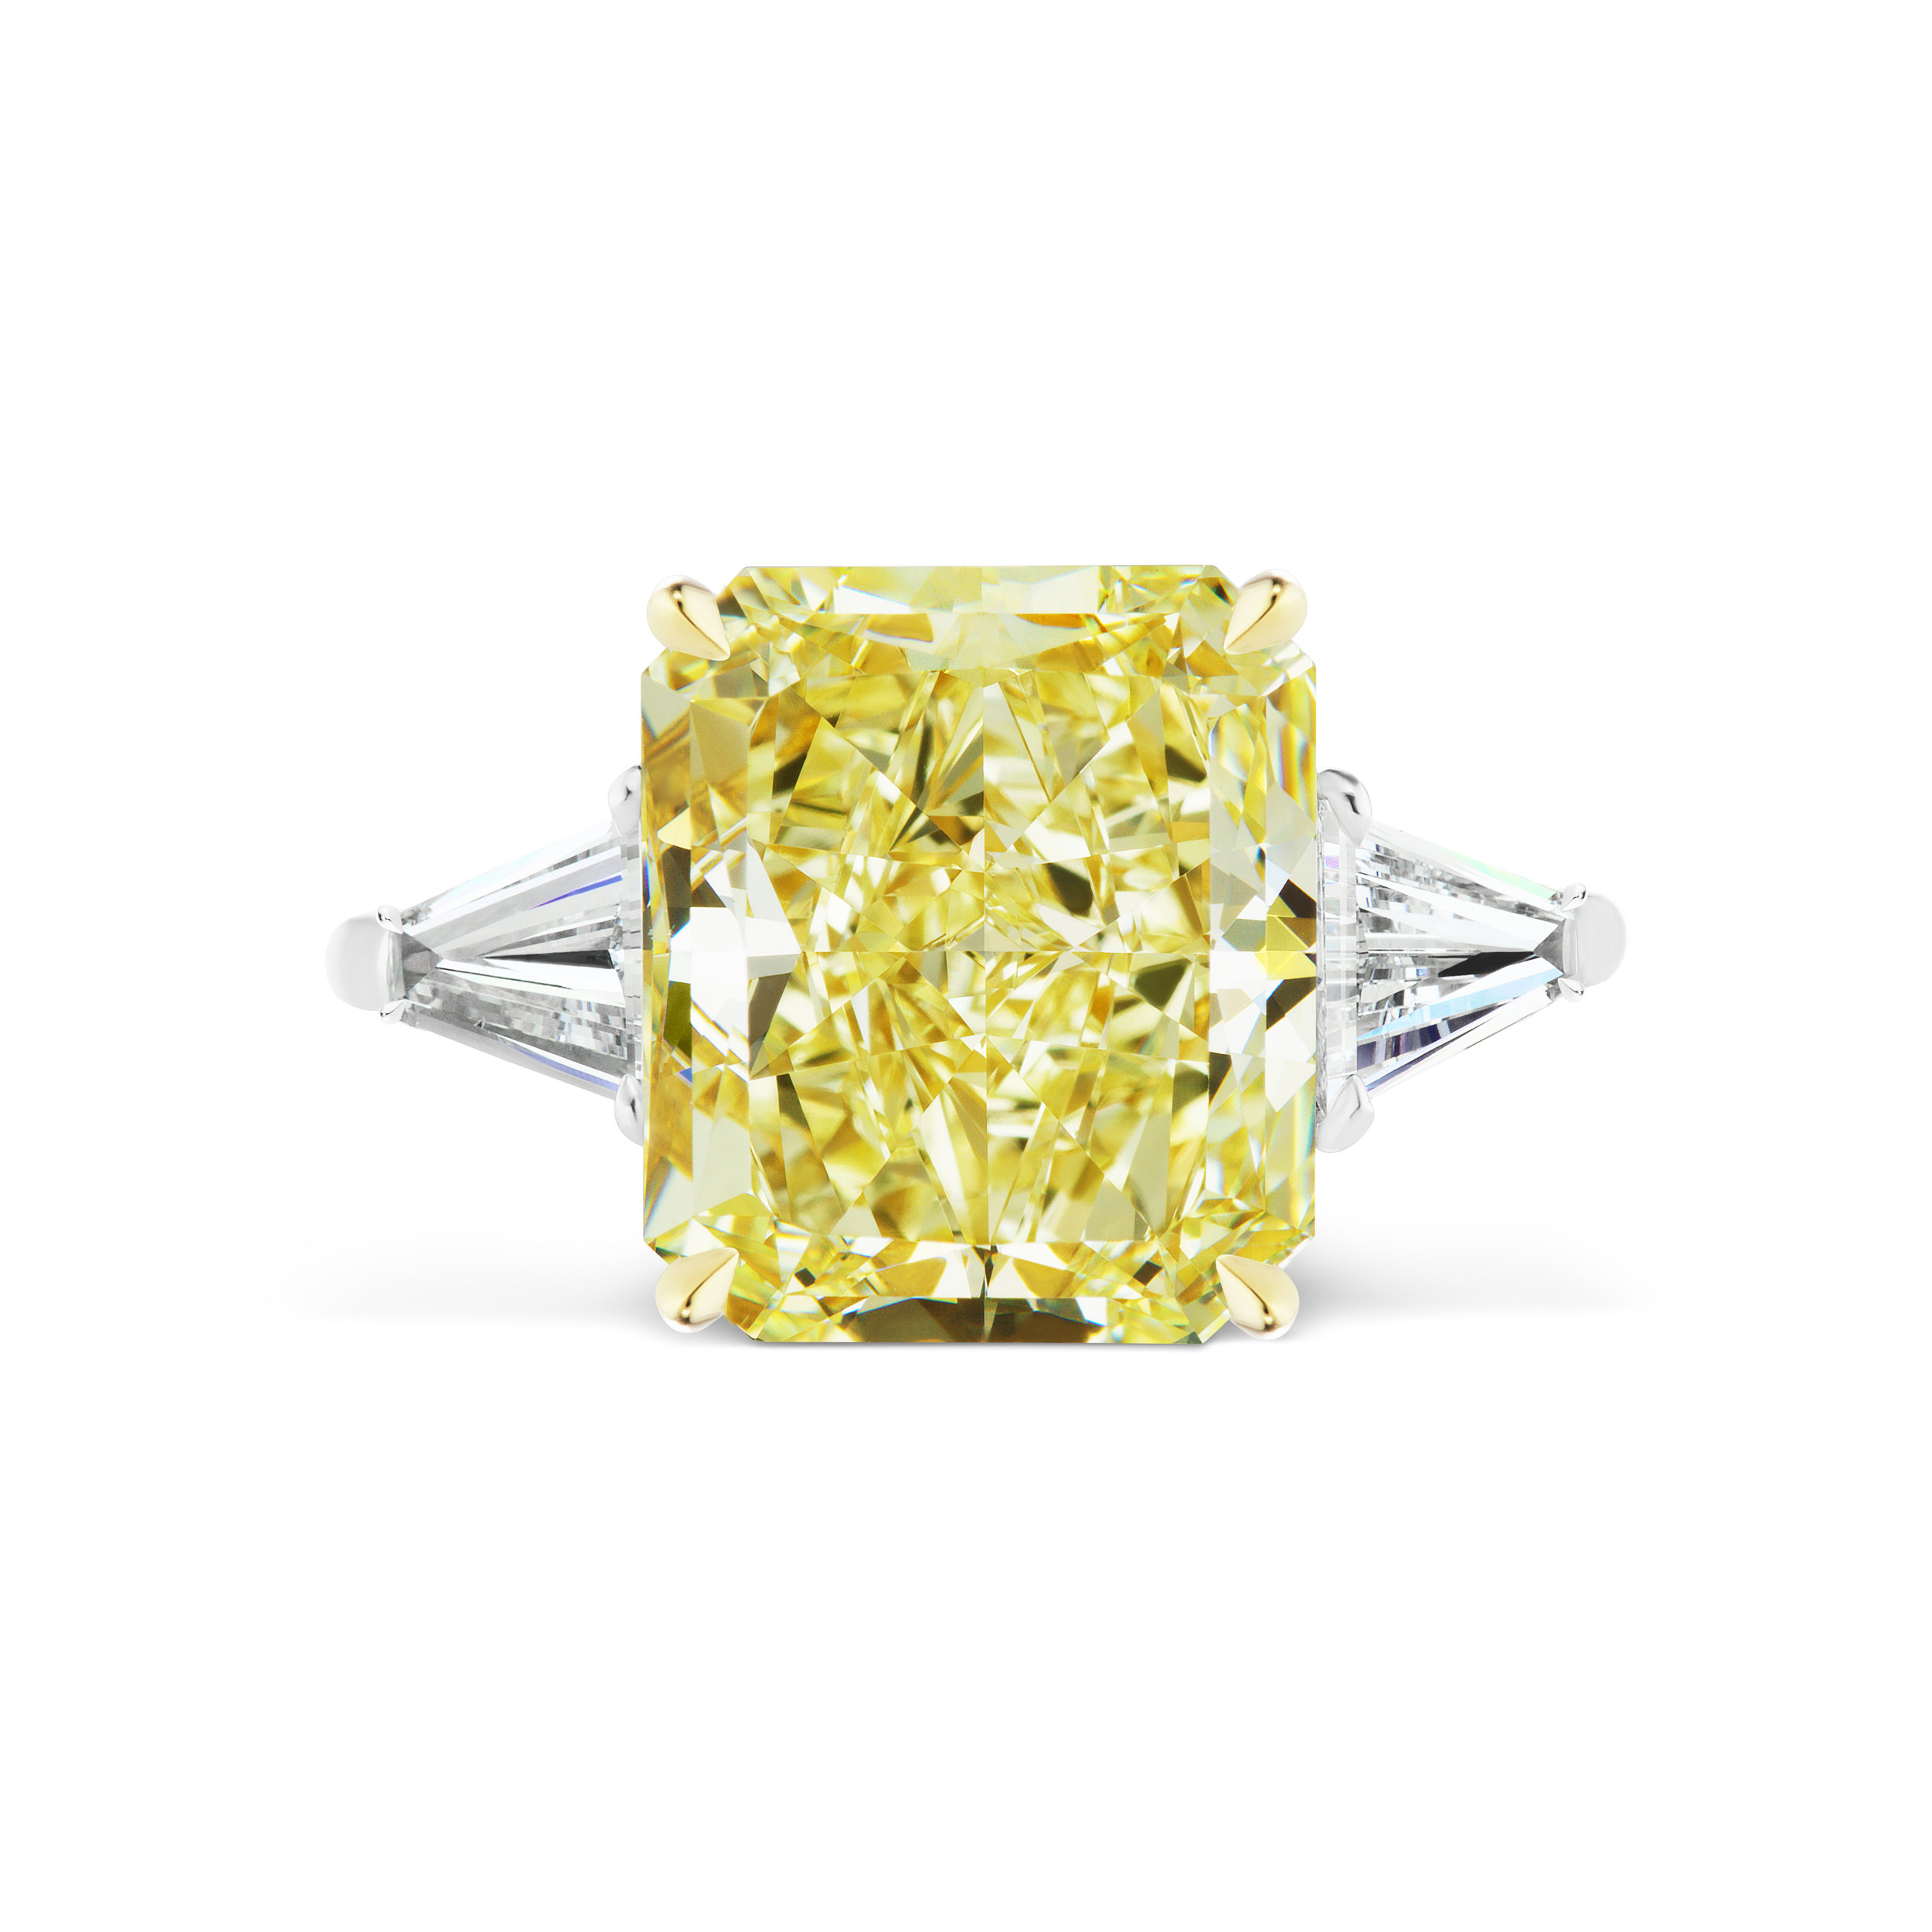 Radiant cut yellow diamond ring with tapered baguette side stones, mounted in platinum.